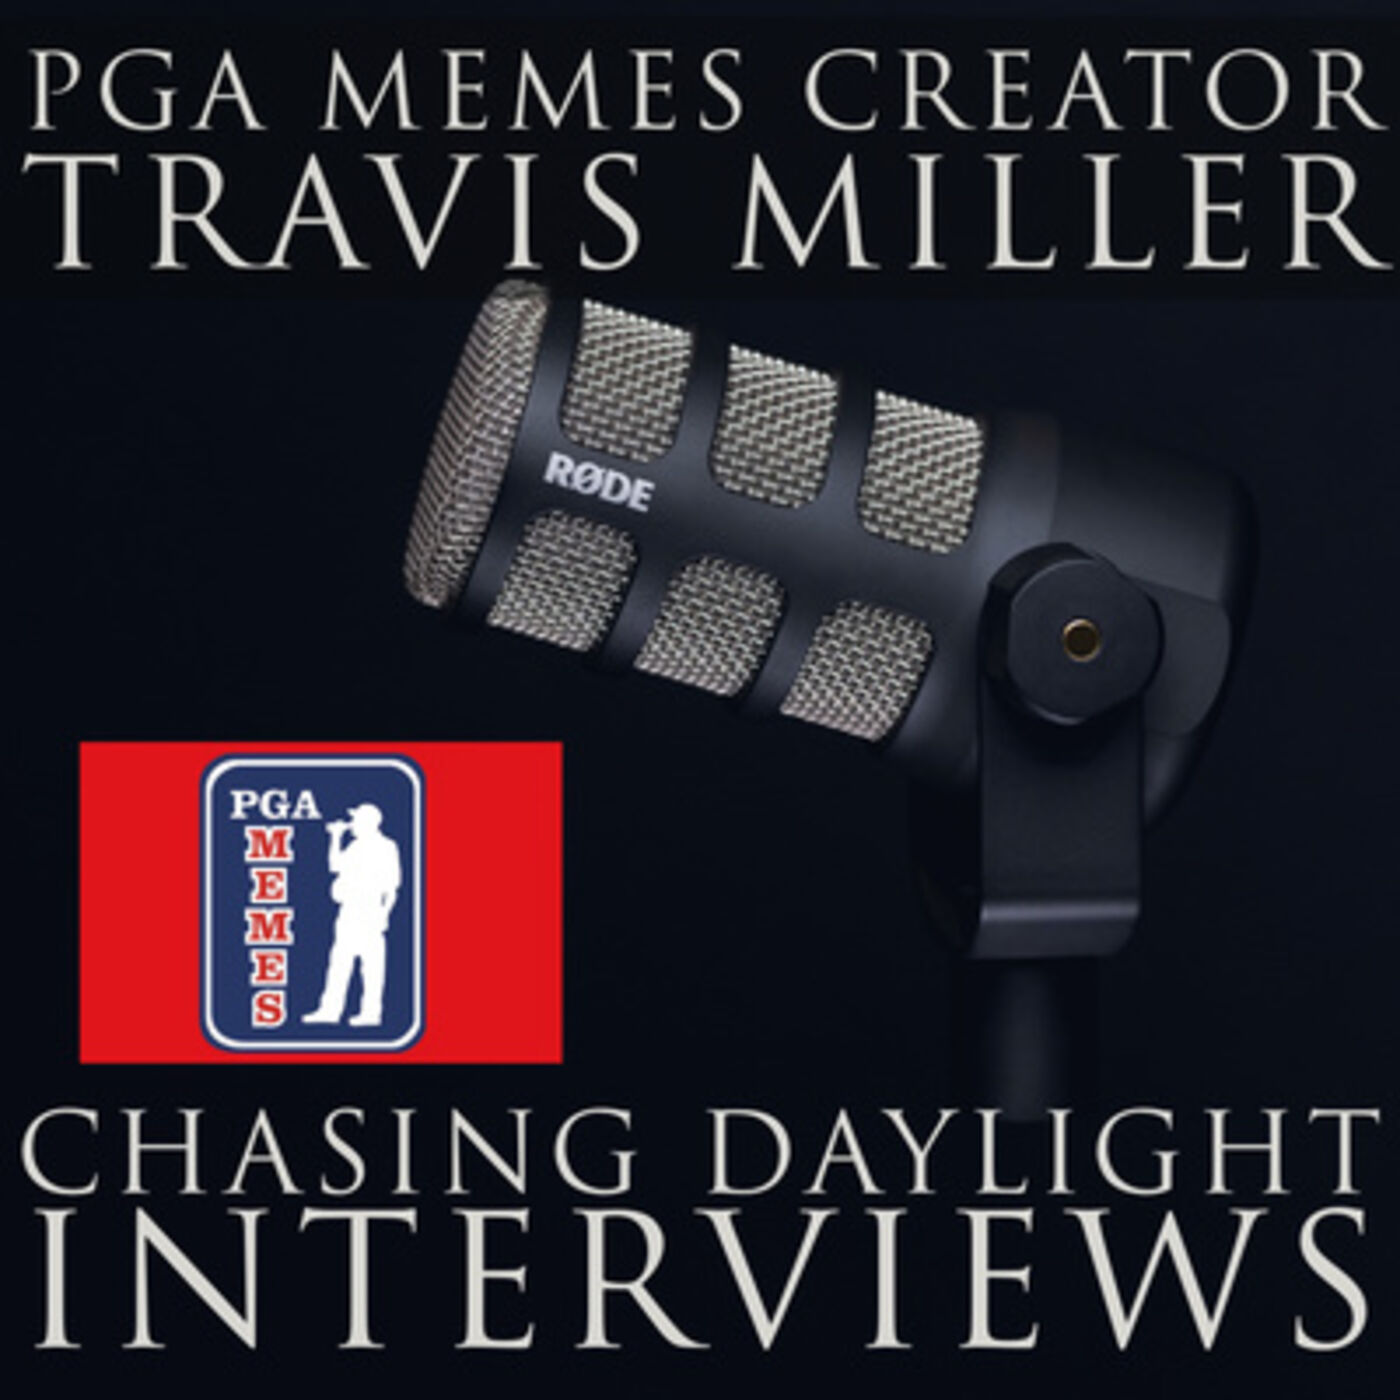 E12: Travis Miller, otherwise know as PGAMemes